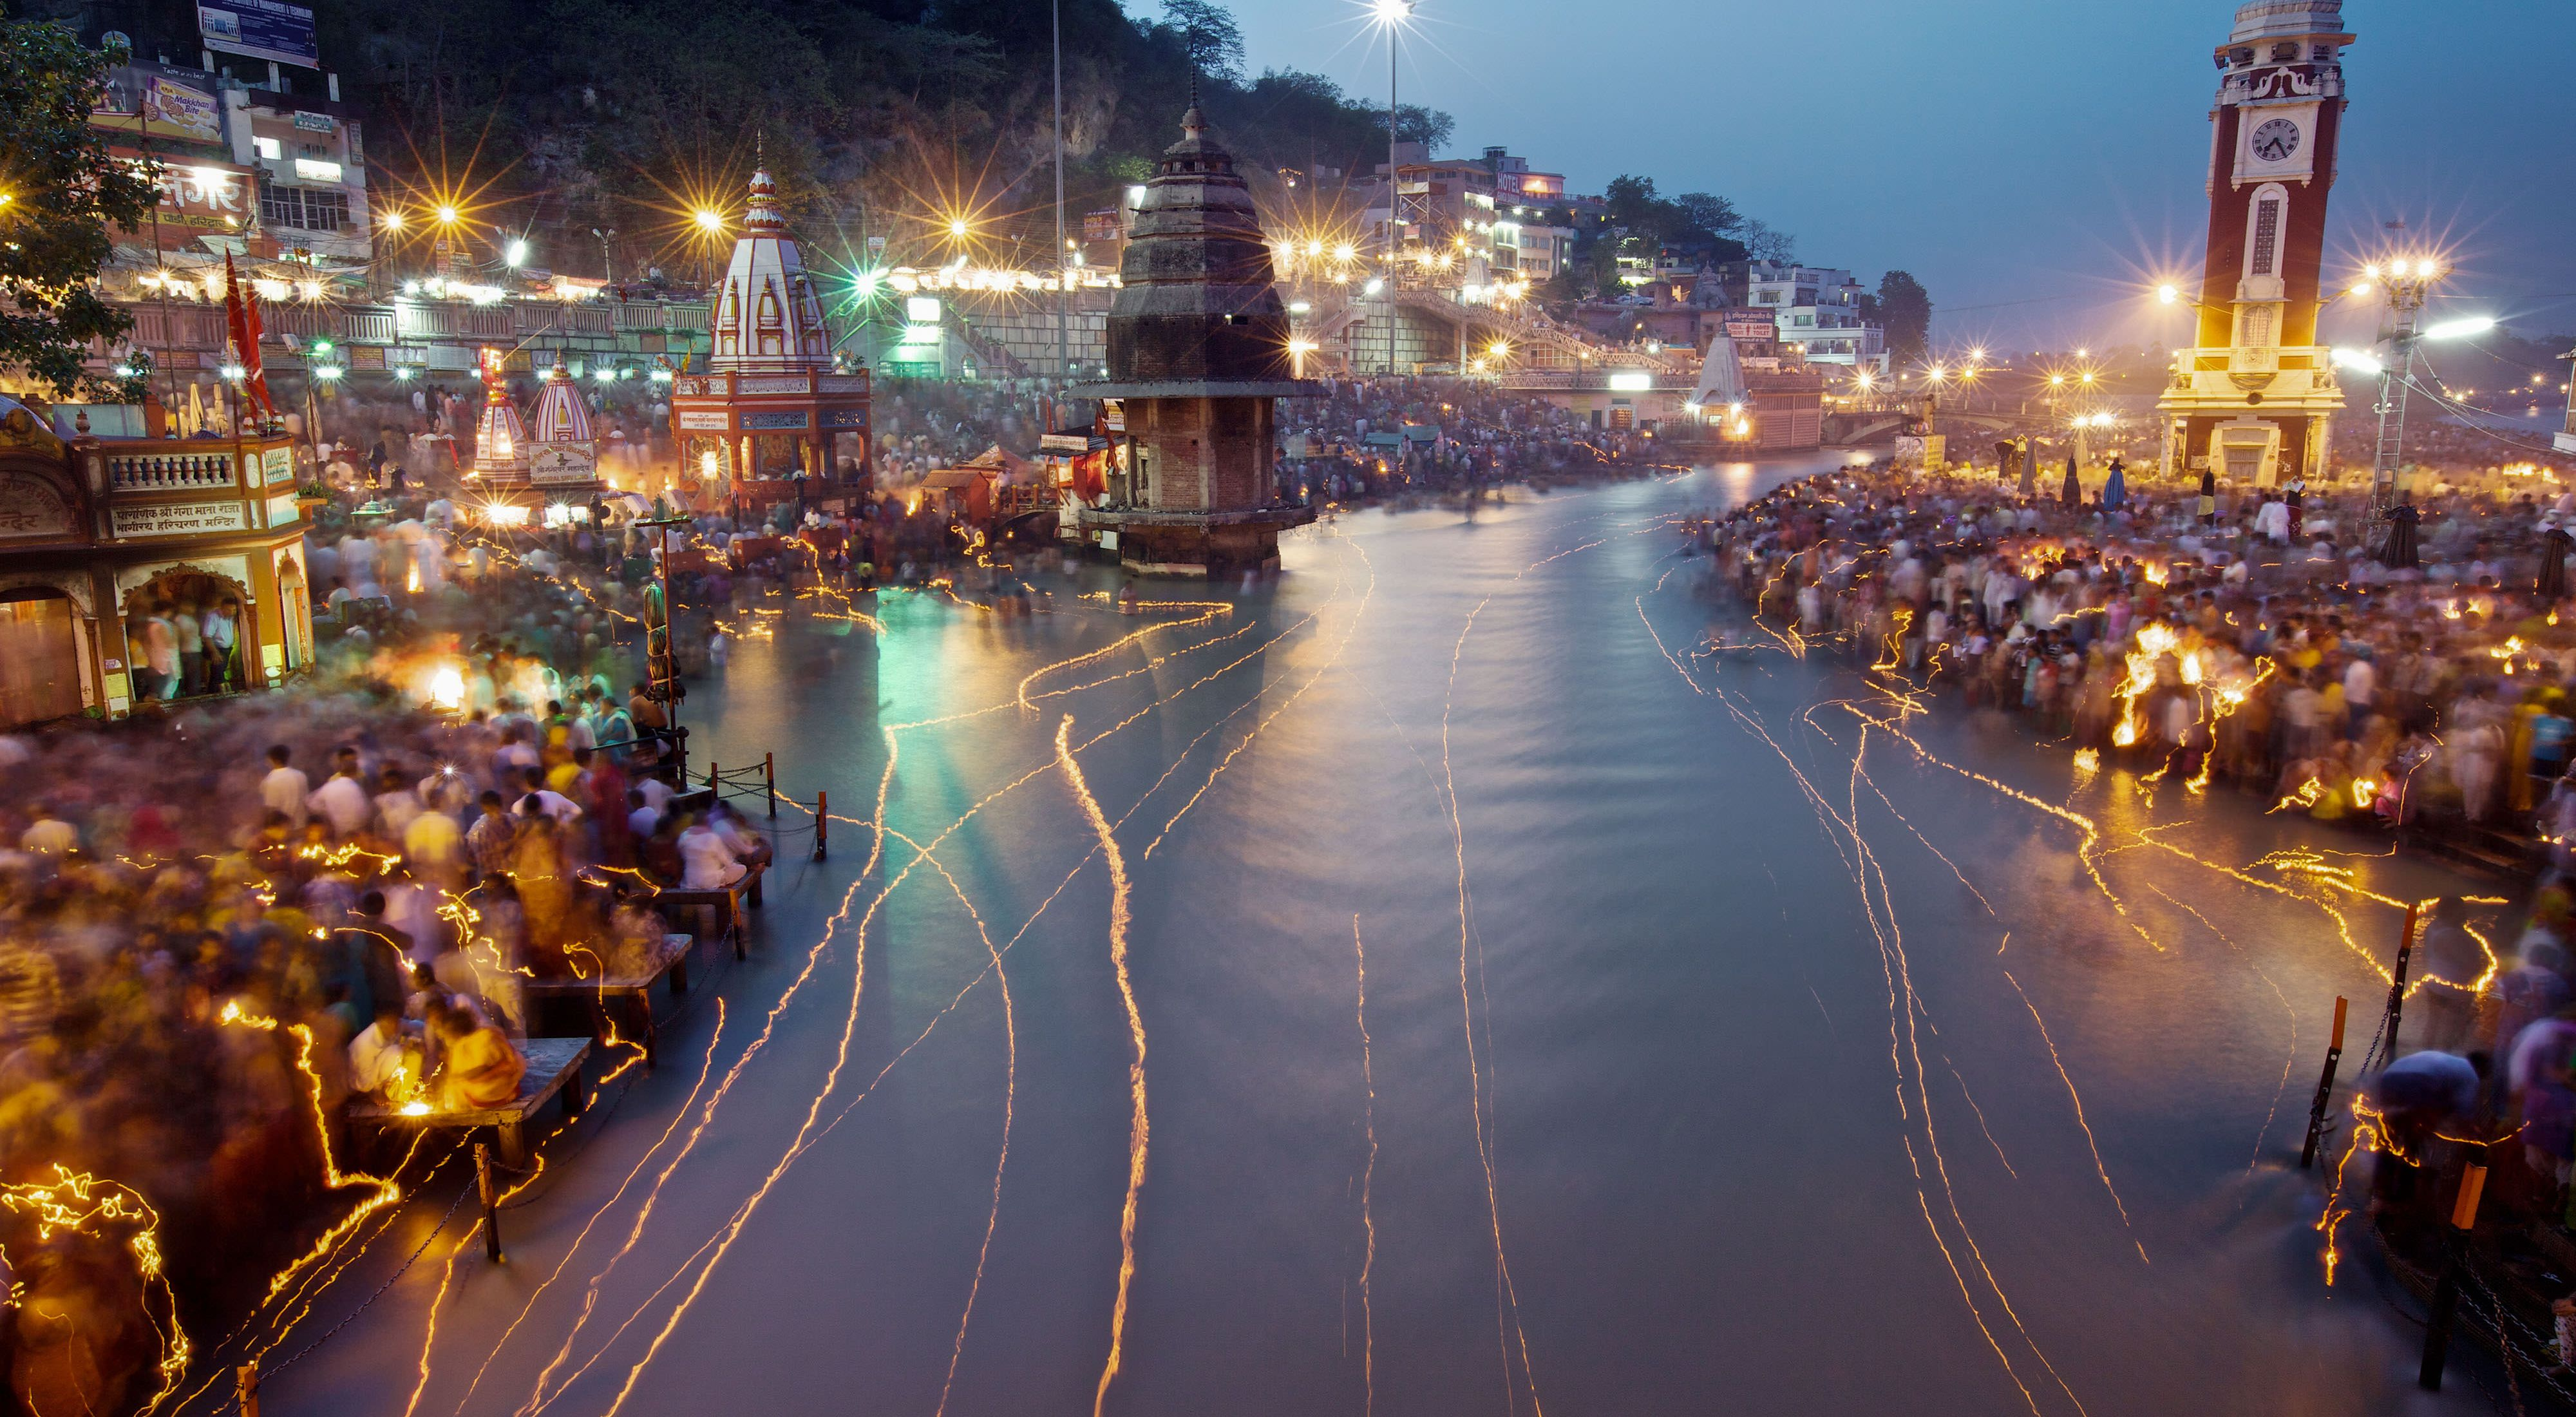 The Ganges River in India at night, reflecting the lights of buildings and passing boats